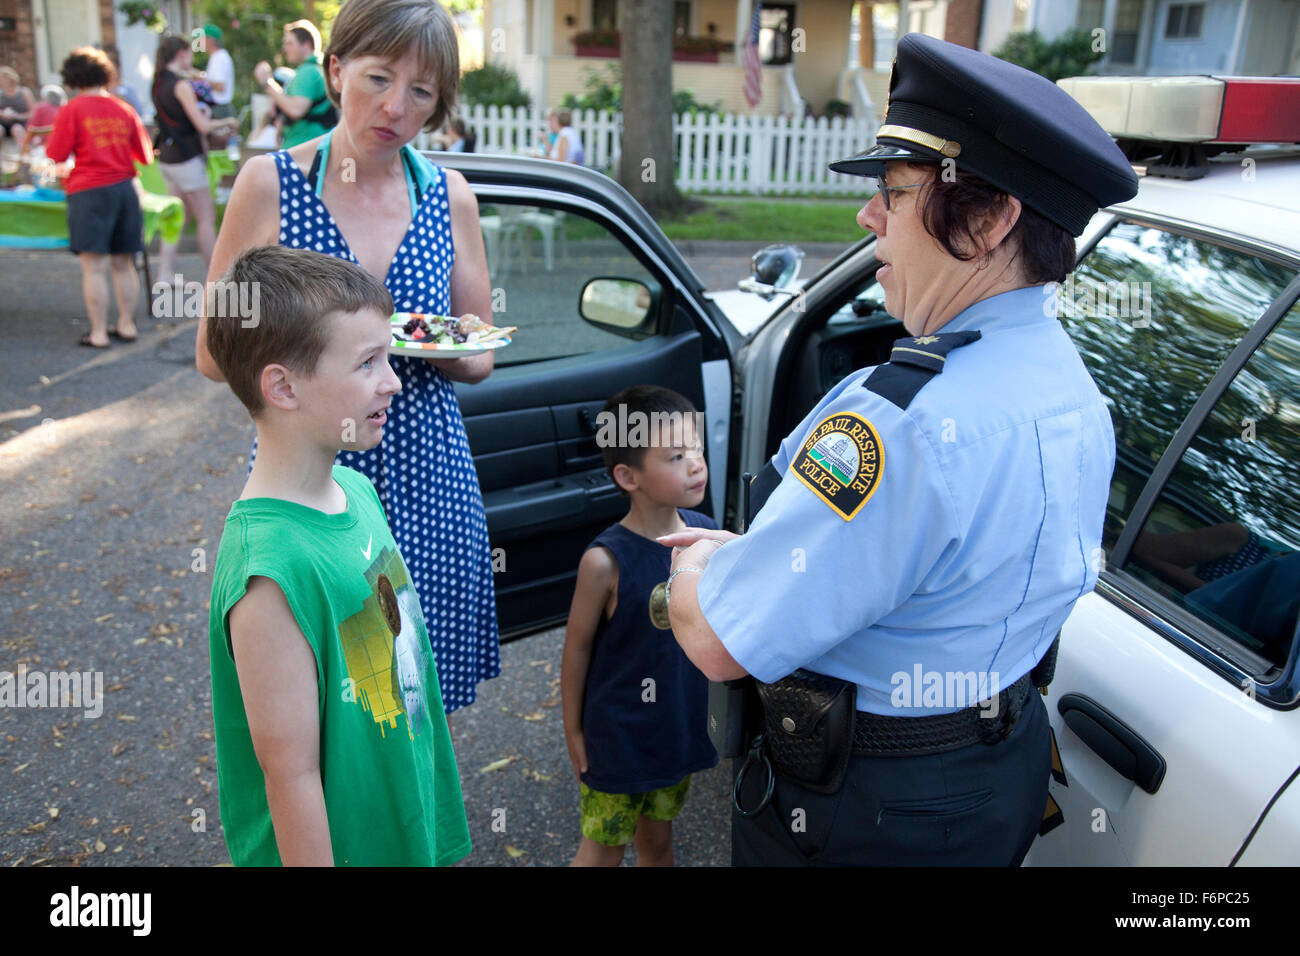 Auxiliary reserve police woman talking to boy age 9, neighborhood 'take back the night' street party. St - Stock Image